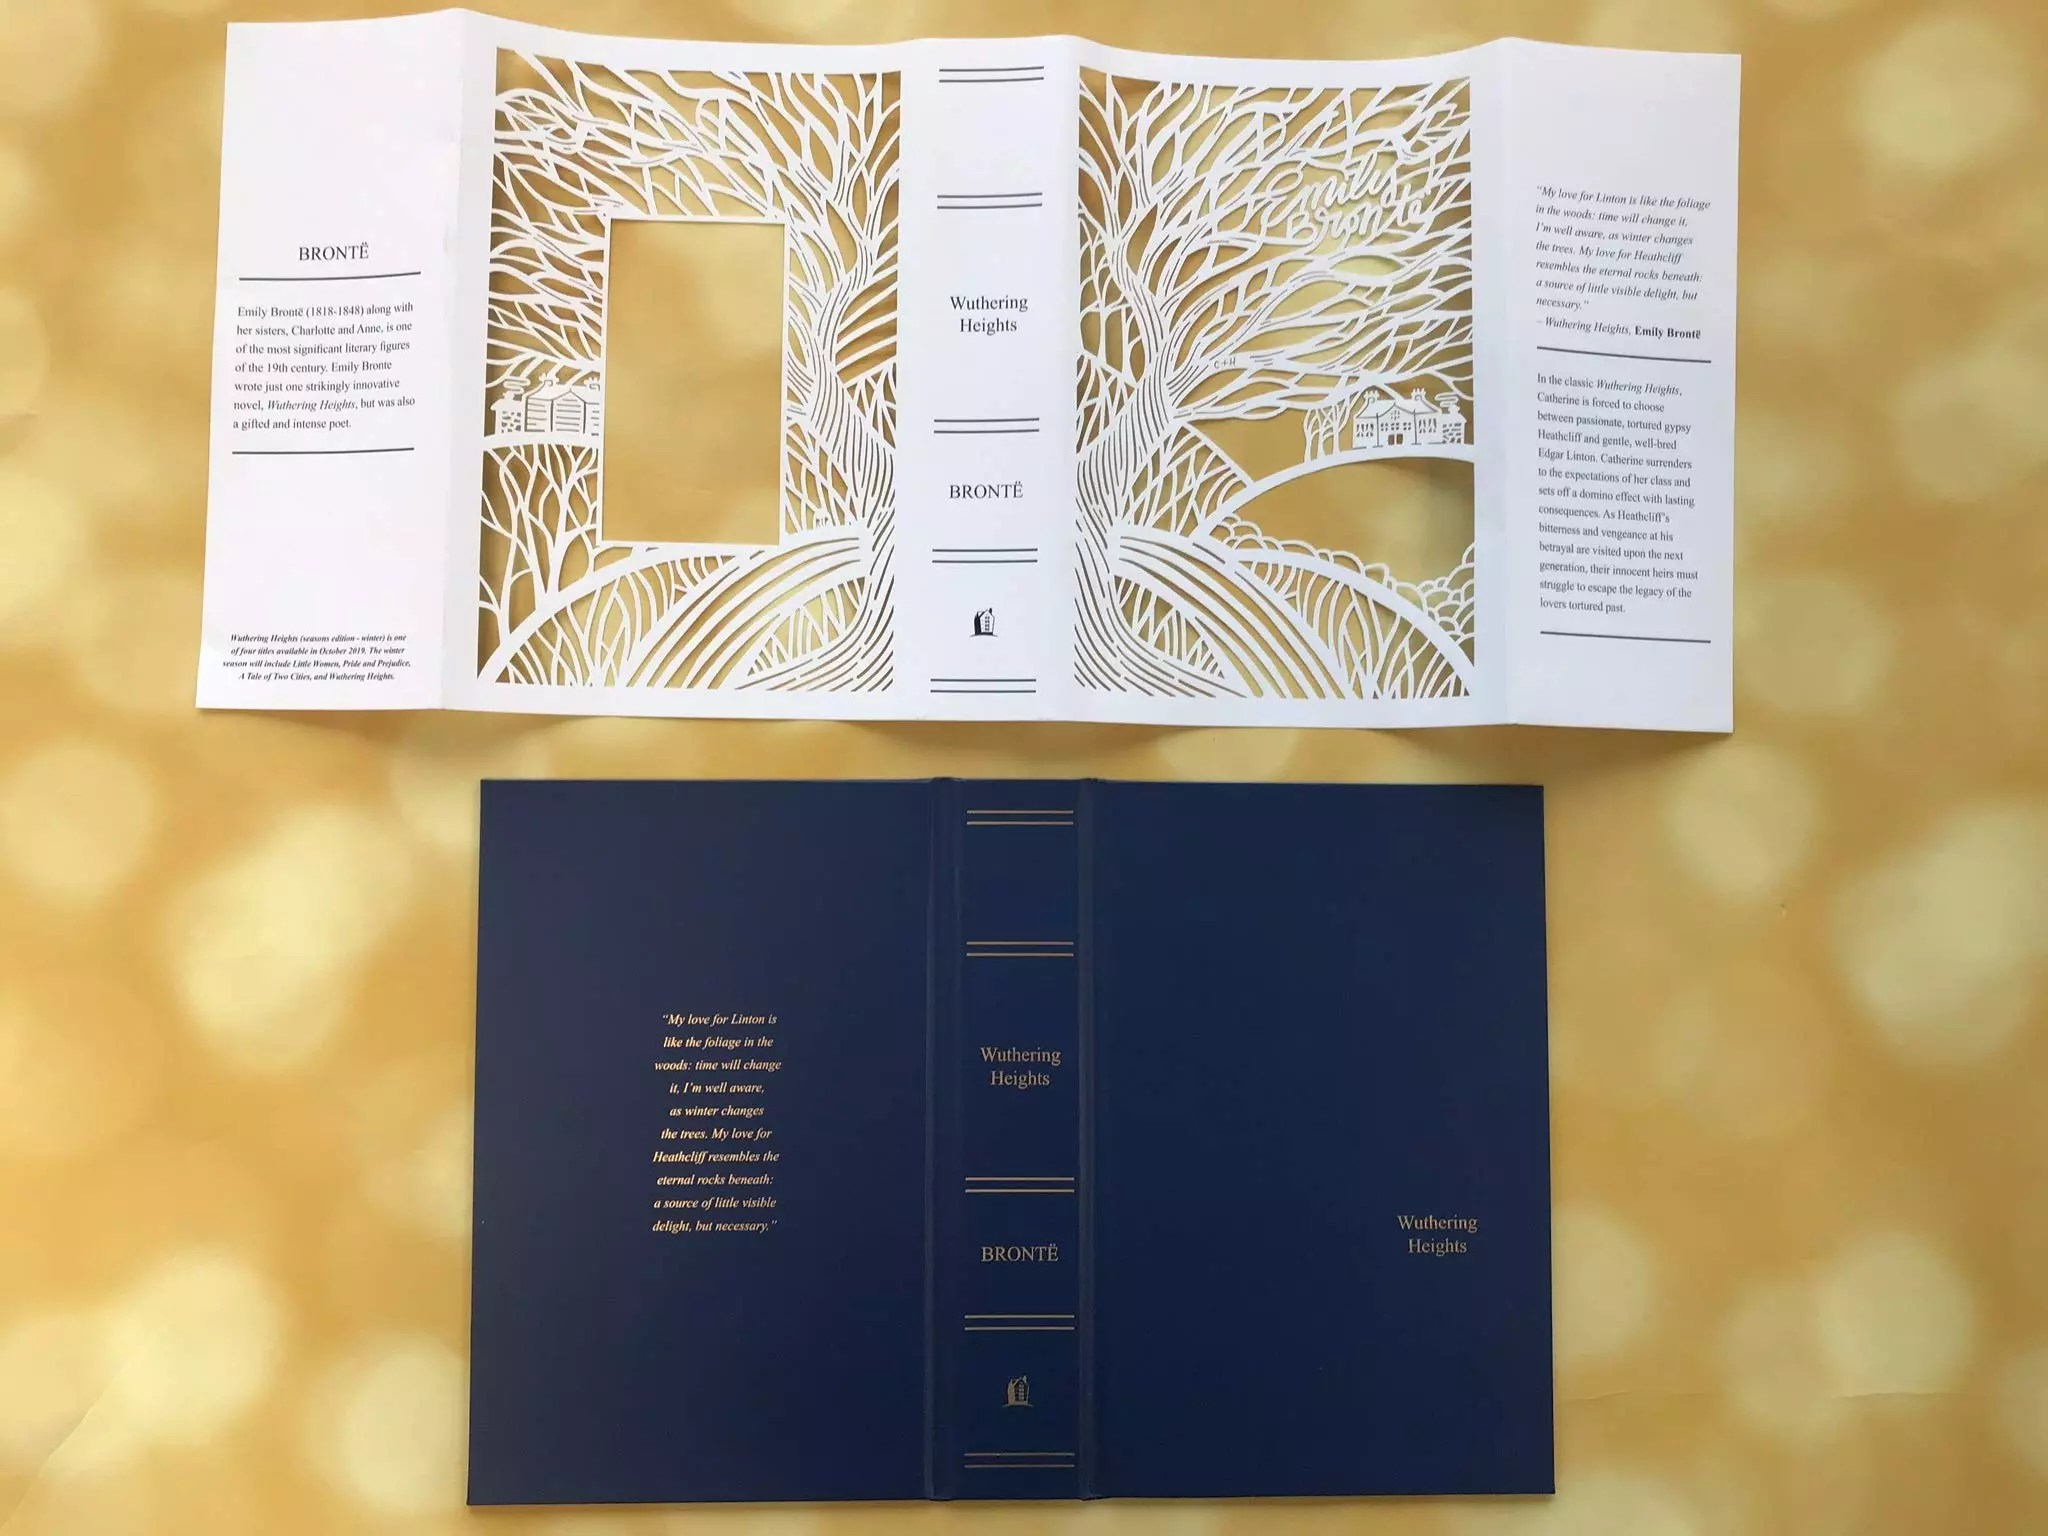 seasons edition emily bronte wuthering heights boards